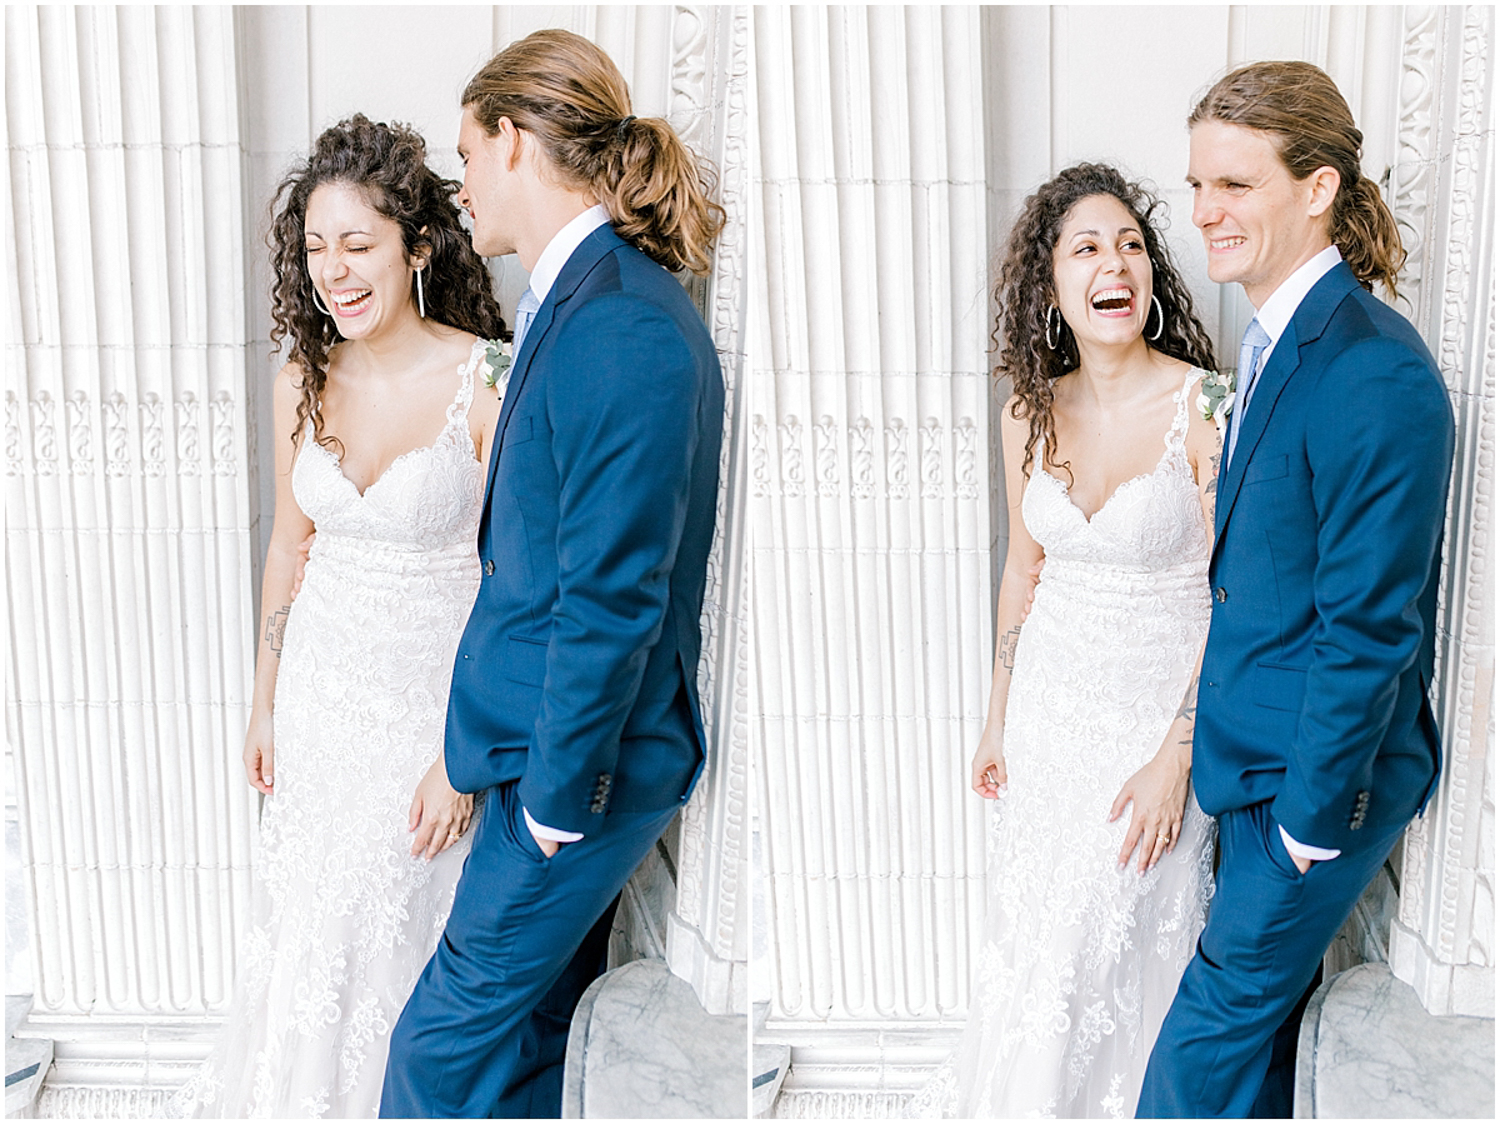 Seattle City Hall Courthouse Wedding Elopement | Seattle Wedding Photographer | Emma Rose Company | Downtown Seattle Wedding Inspiration | Pacific Northwest Elopement | Courthouse Elopement in the City-69.jpg